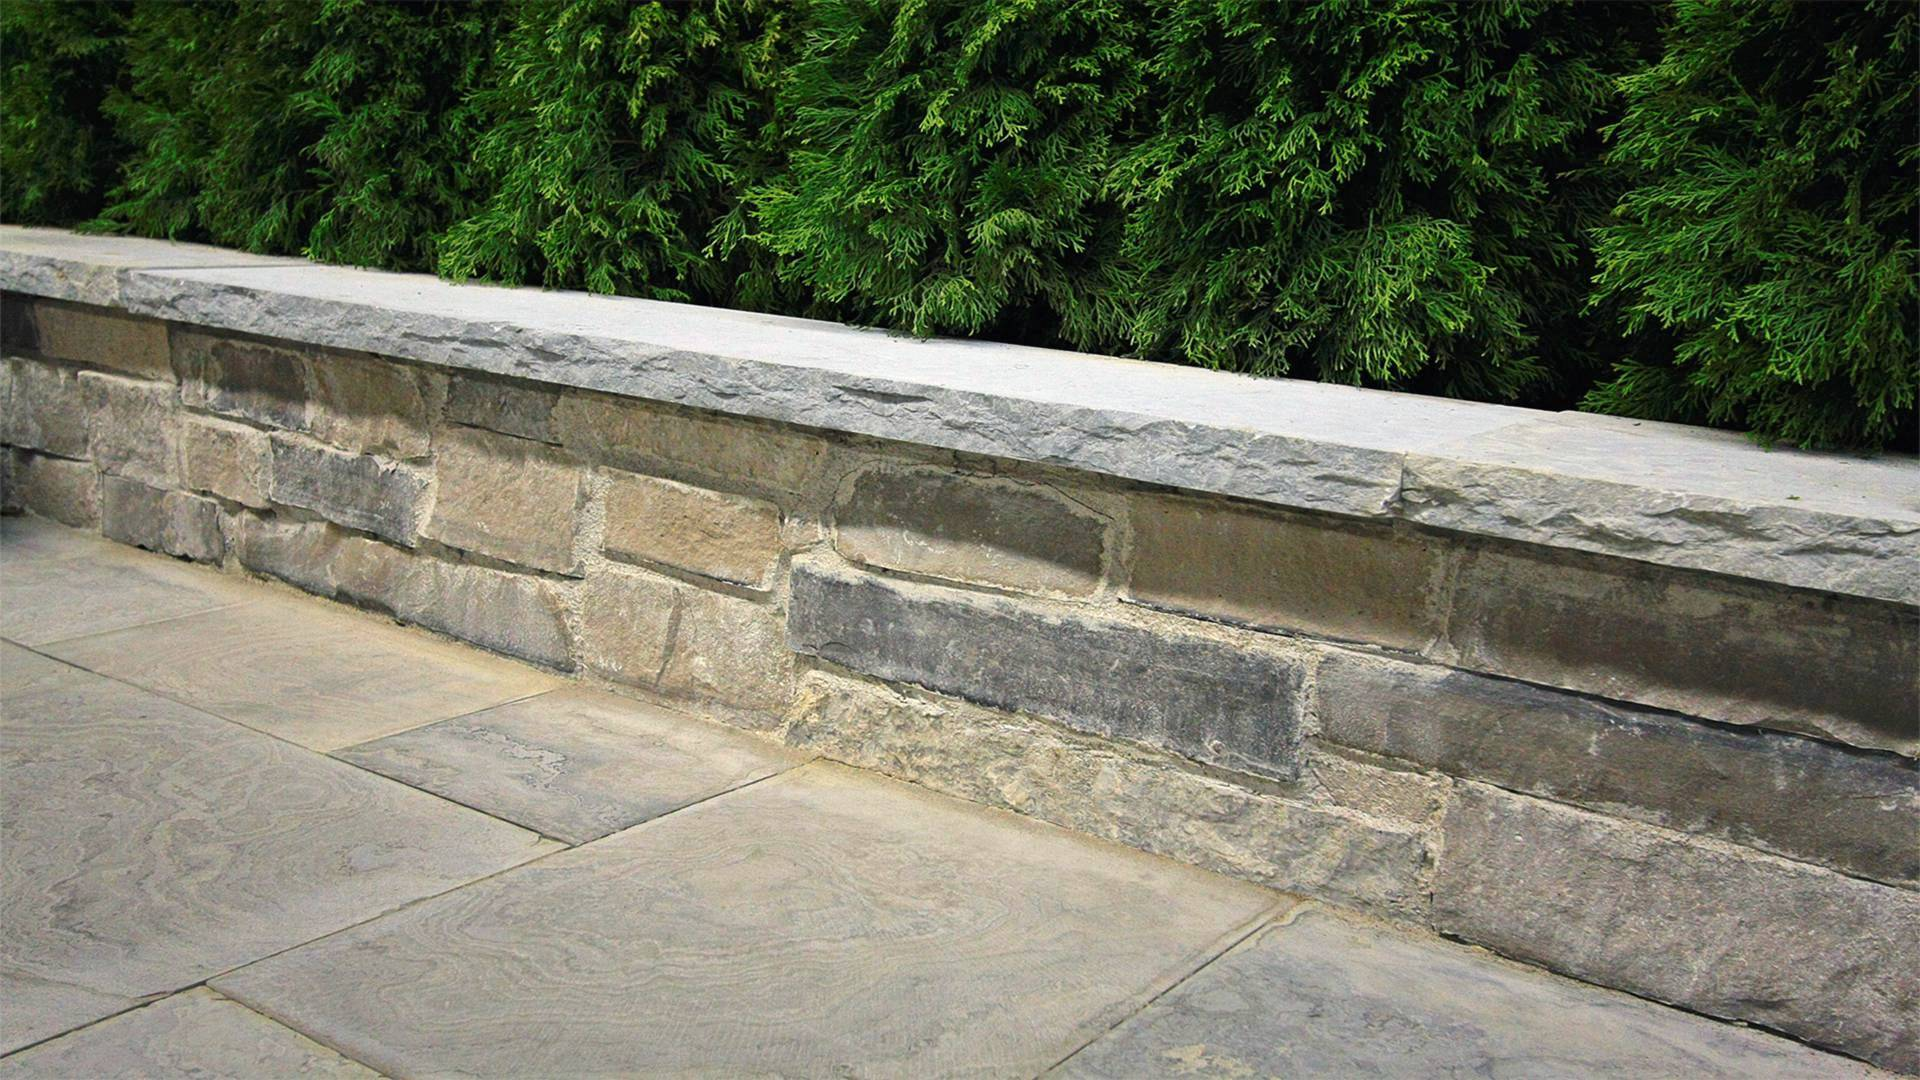 Traditional stonework / hardscaping project in London Ontario. A retaining wall.